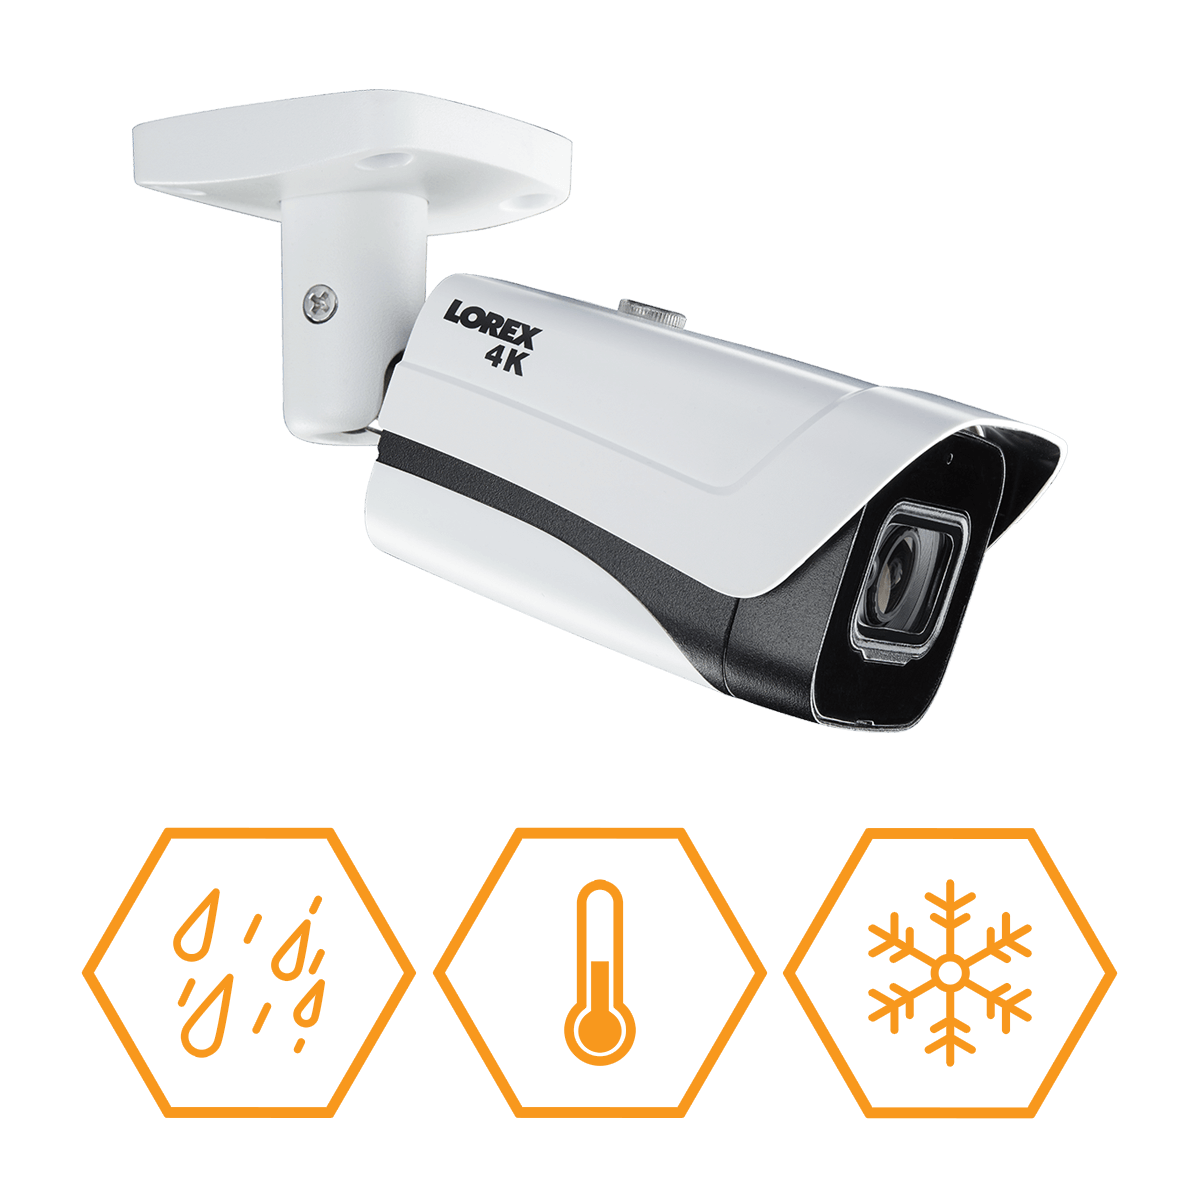 IP67 security camera